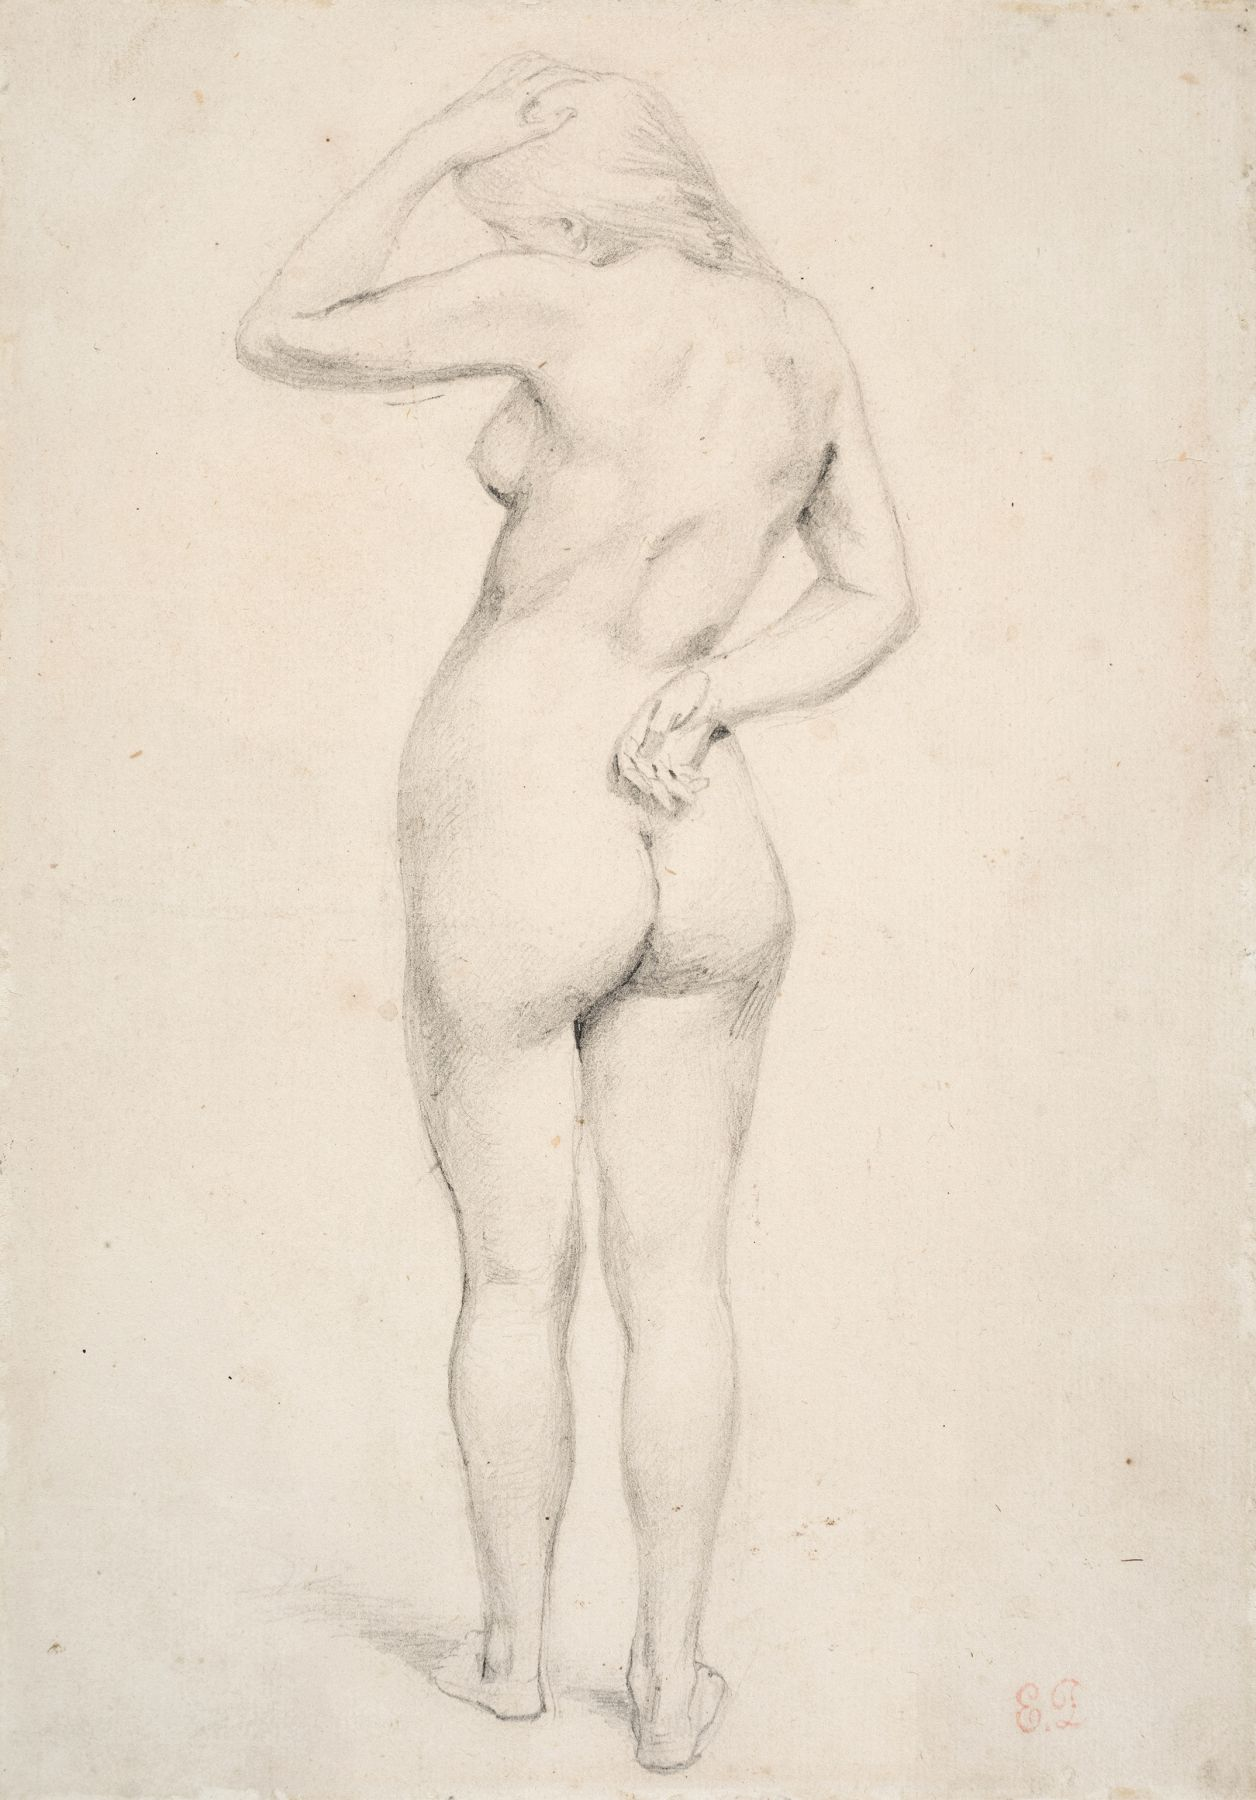 Eugene delacroix Standing Female Nude Seen from Behind    Pencil on paper 9 1/4 x 6 3/8 inches